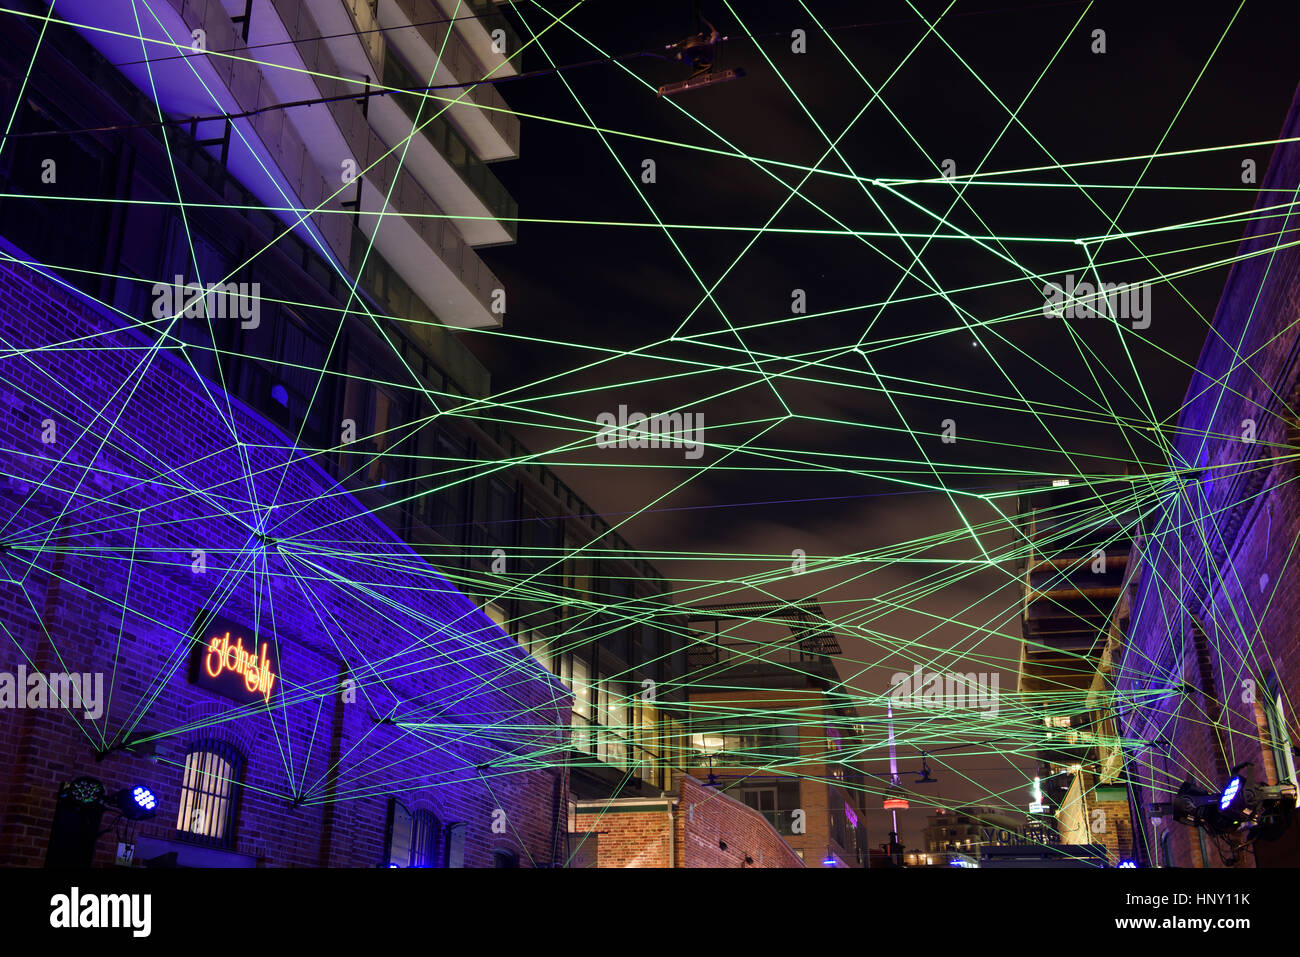 Green fiber optic cables art installation at Toronto Light Festival at Distillery District with CN Tower at night - Stock Image